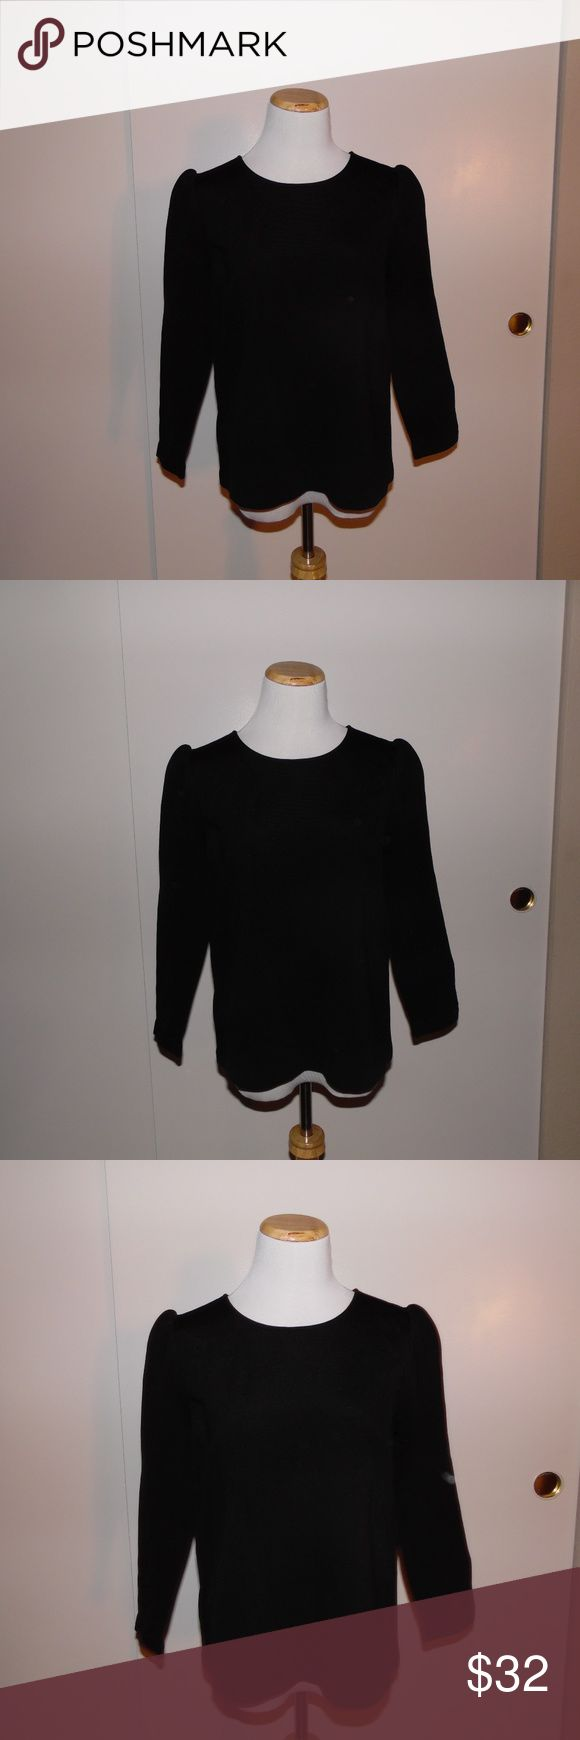 Ann Taylor Blouse New with Tags Ann Taylor Blouse, not Factory or Loft, Purchased from the Retail store! Size Small beautiful black long sleeve Ann Taylor top. Ann Taylor Tops Blouses